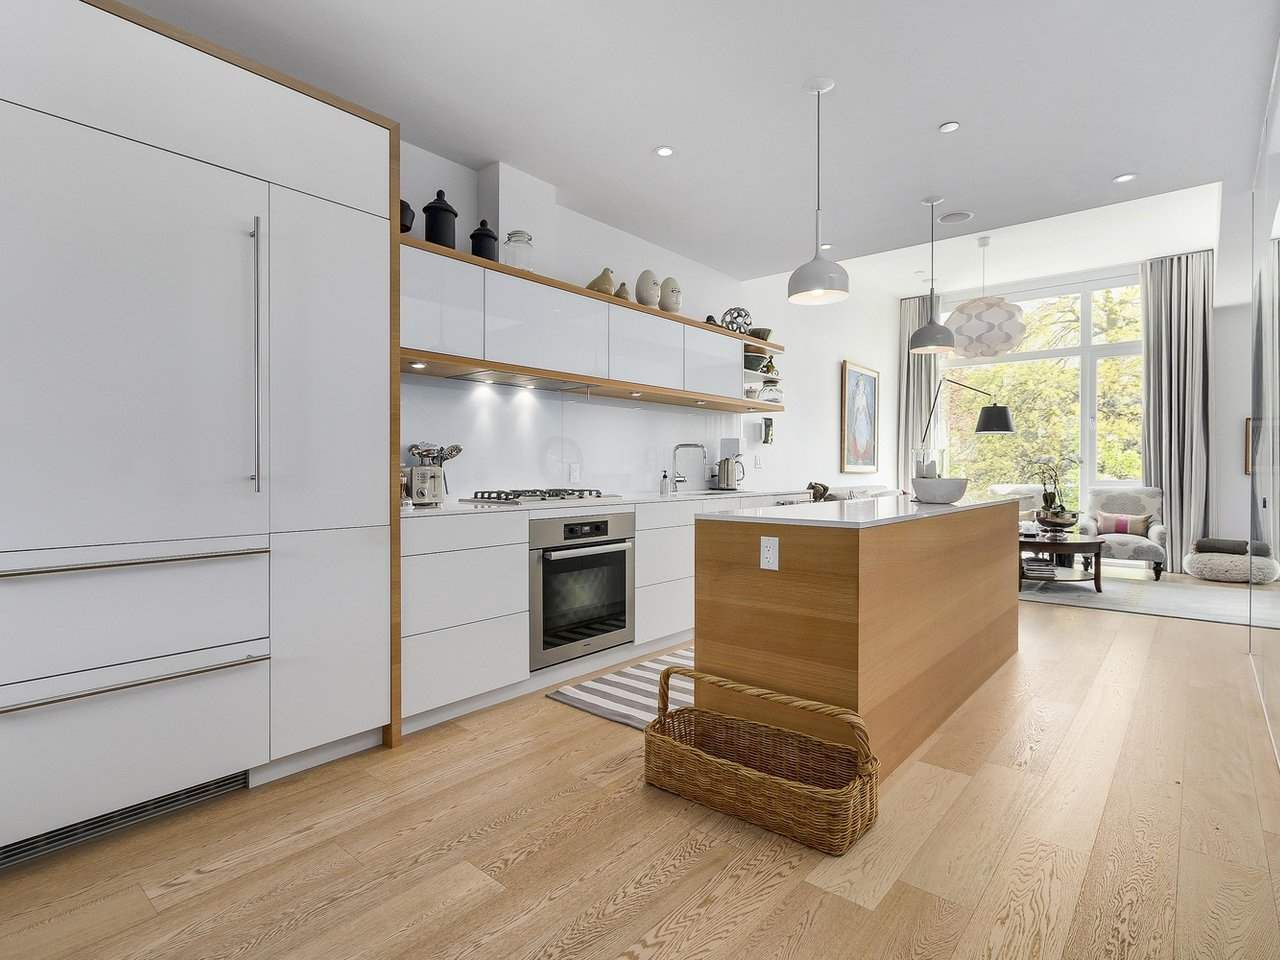 """Main Photo: 1887 W 2ND Avenue in Vancouver: Kitsilano Townhouse for sale in """"Blanc"""" (Vancouver West)  : MLS®# R2164681"""